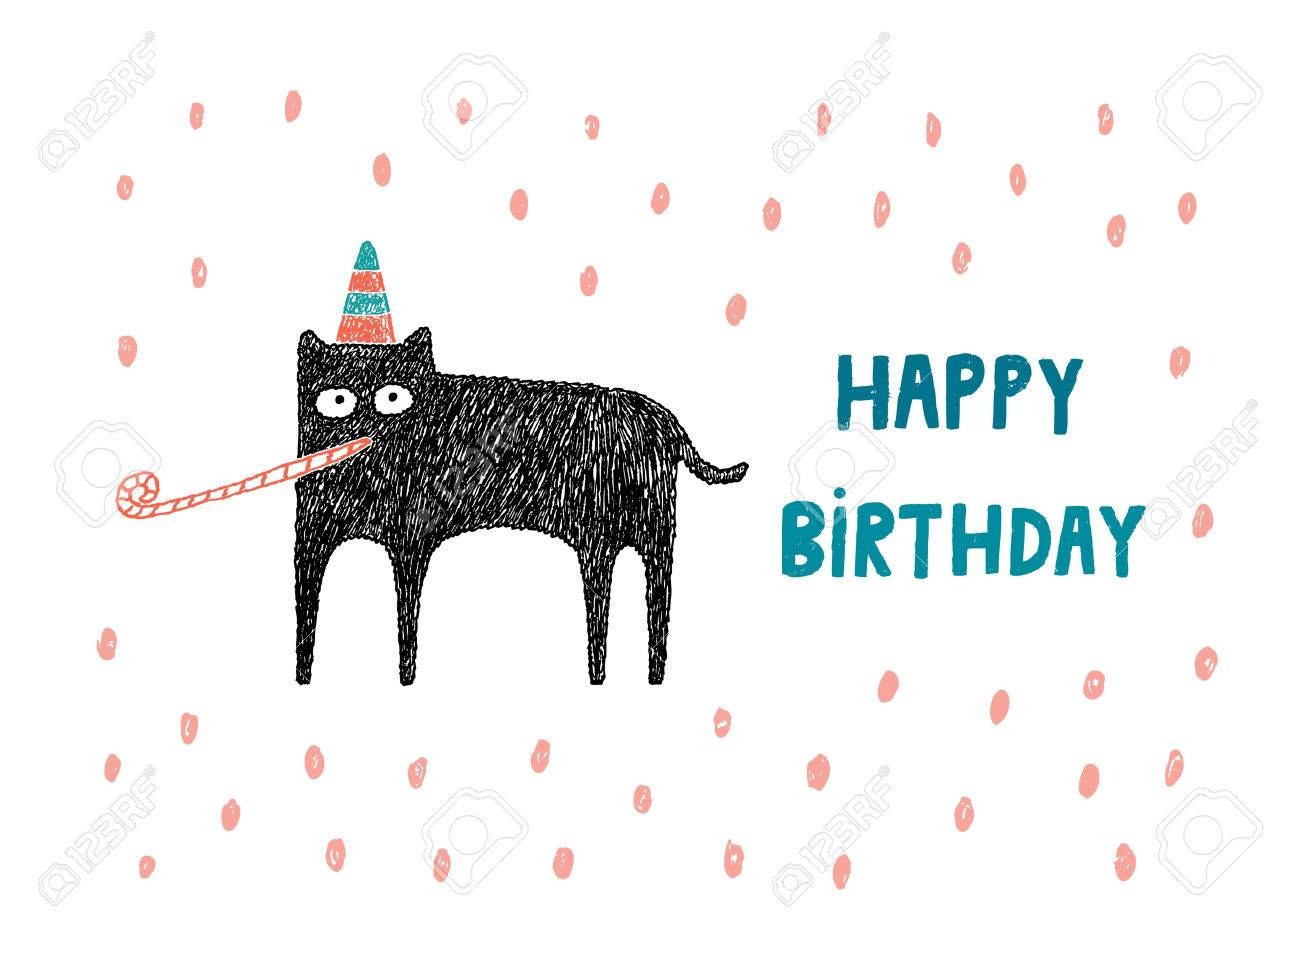 Happy Birthday Card Cat With Hat And Party Blower Illustration Stock Vector